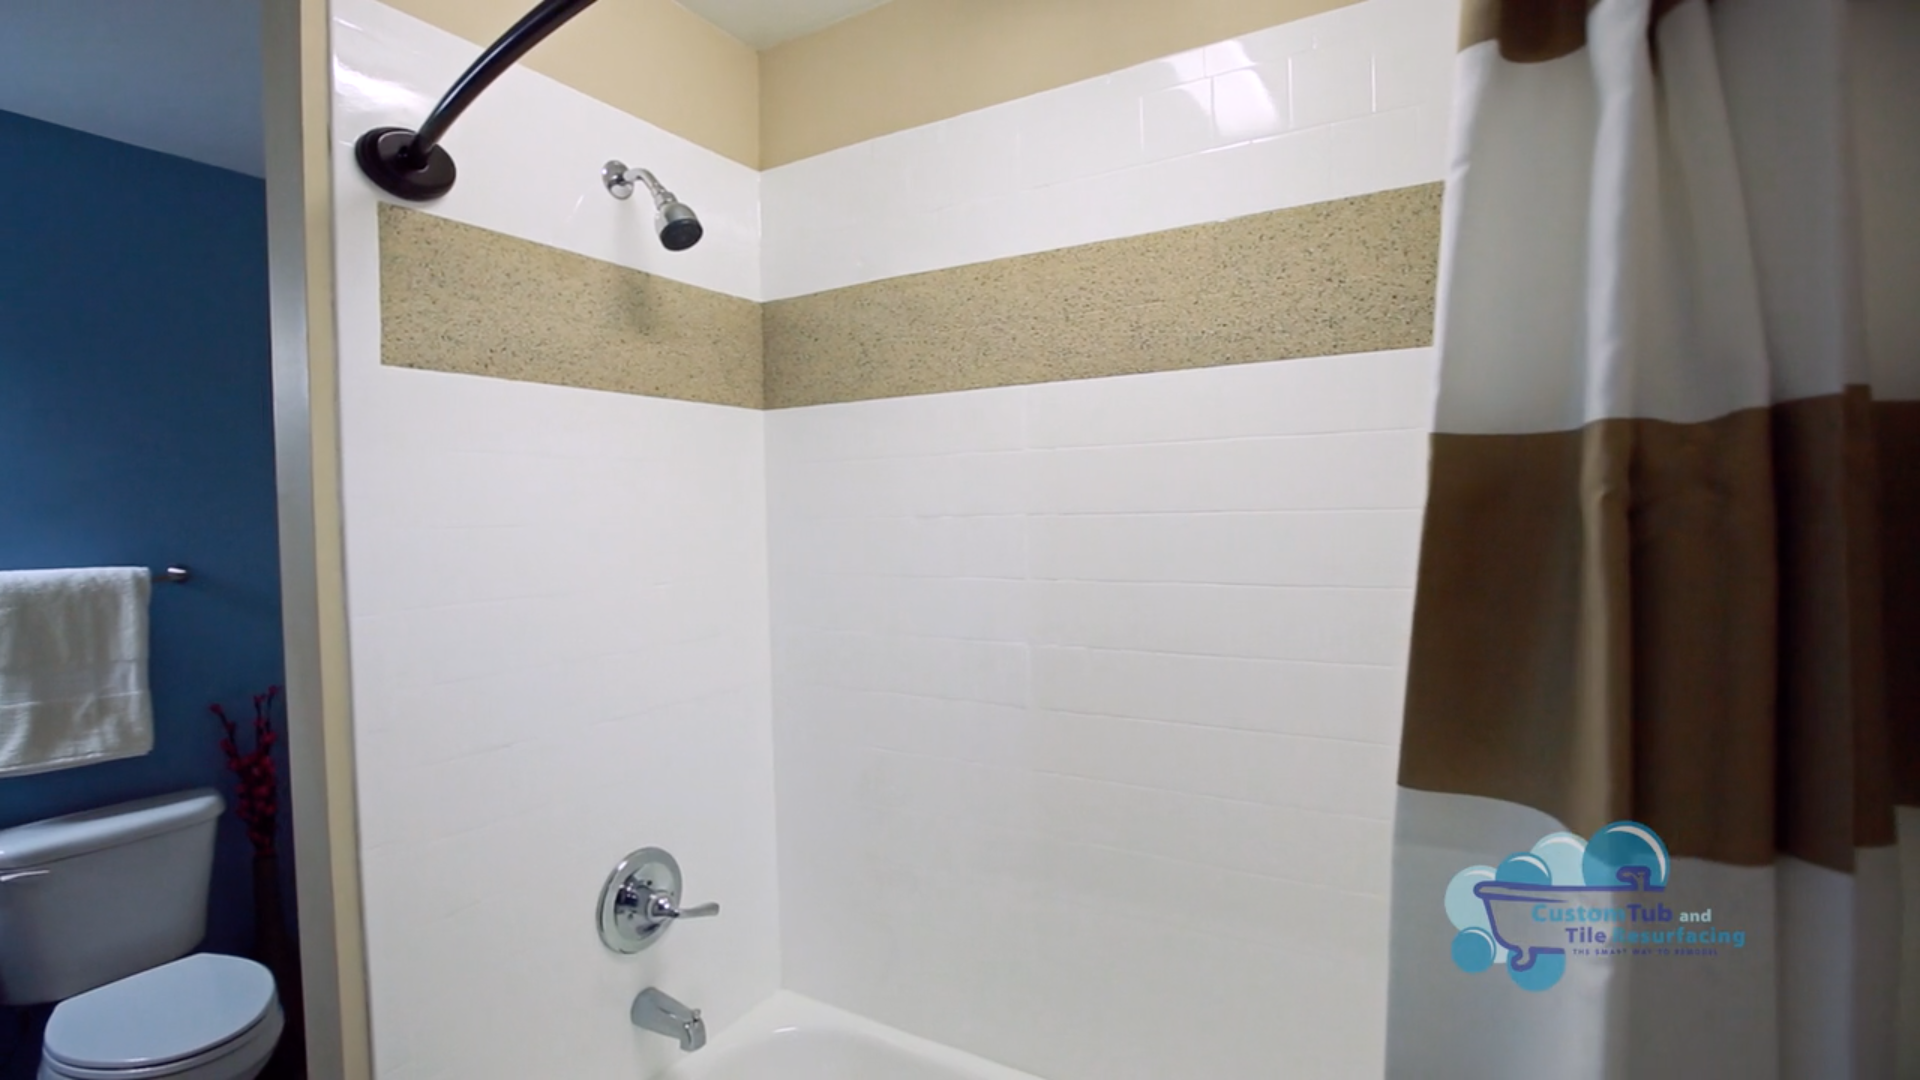 Refinish Bathroom Tile bathtub refinishing & resurfacing professionals - free quote